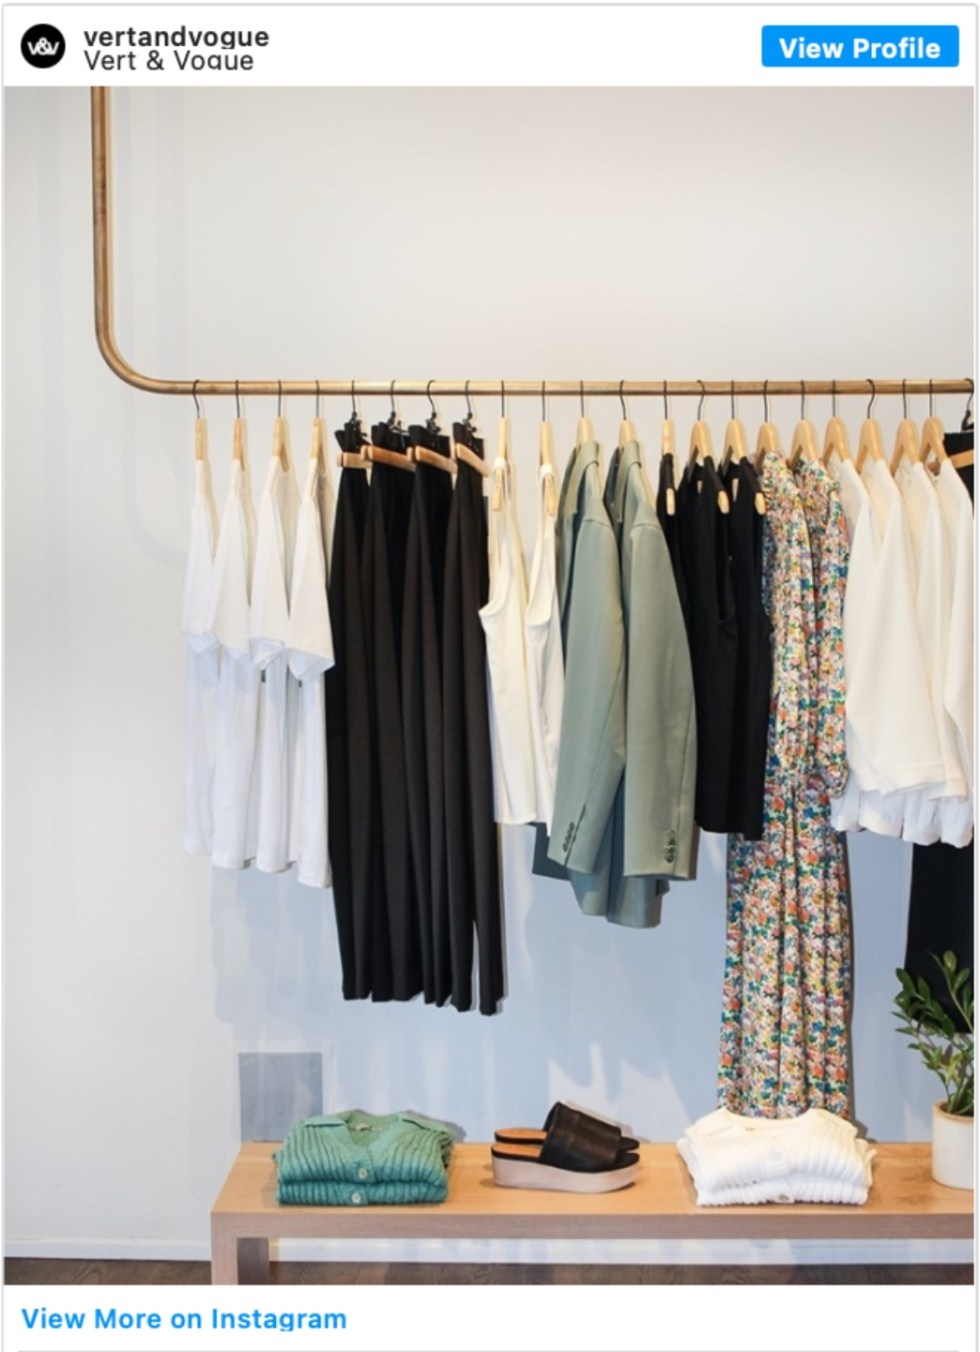 Durham Shopping: Top 11 Best Fashion Boutiques to visit After a Year of Quarantine - I'm Fixin' To - @imfixintoblog | Durham Shopping by popular NC lifestyle blog, I'm Fixin' To: image of clothes hanging on a copper bar.